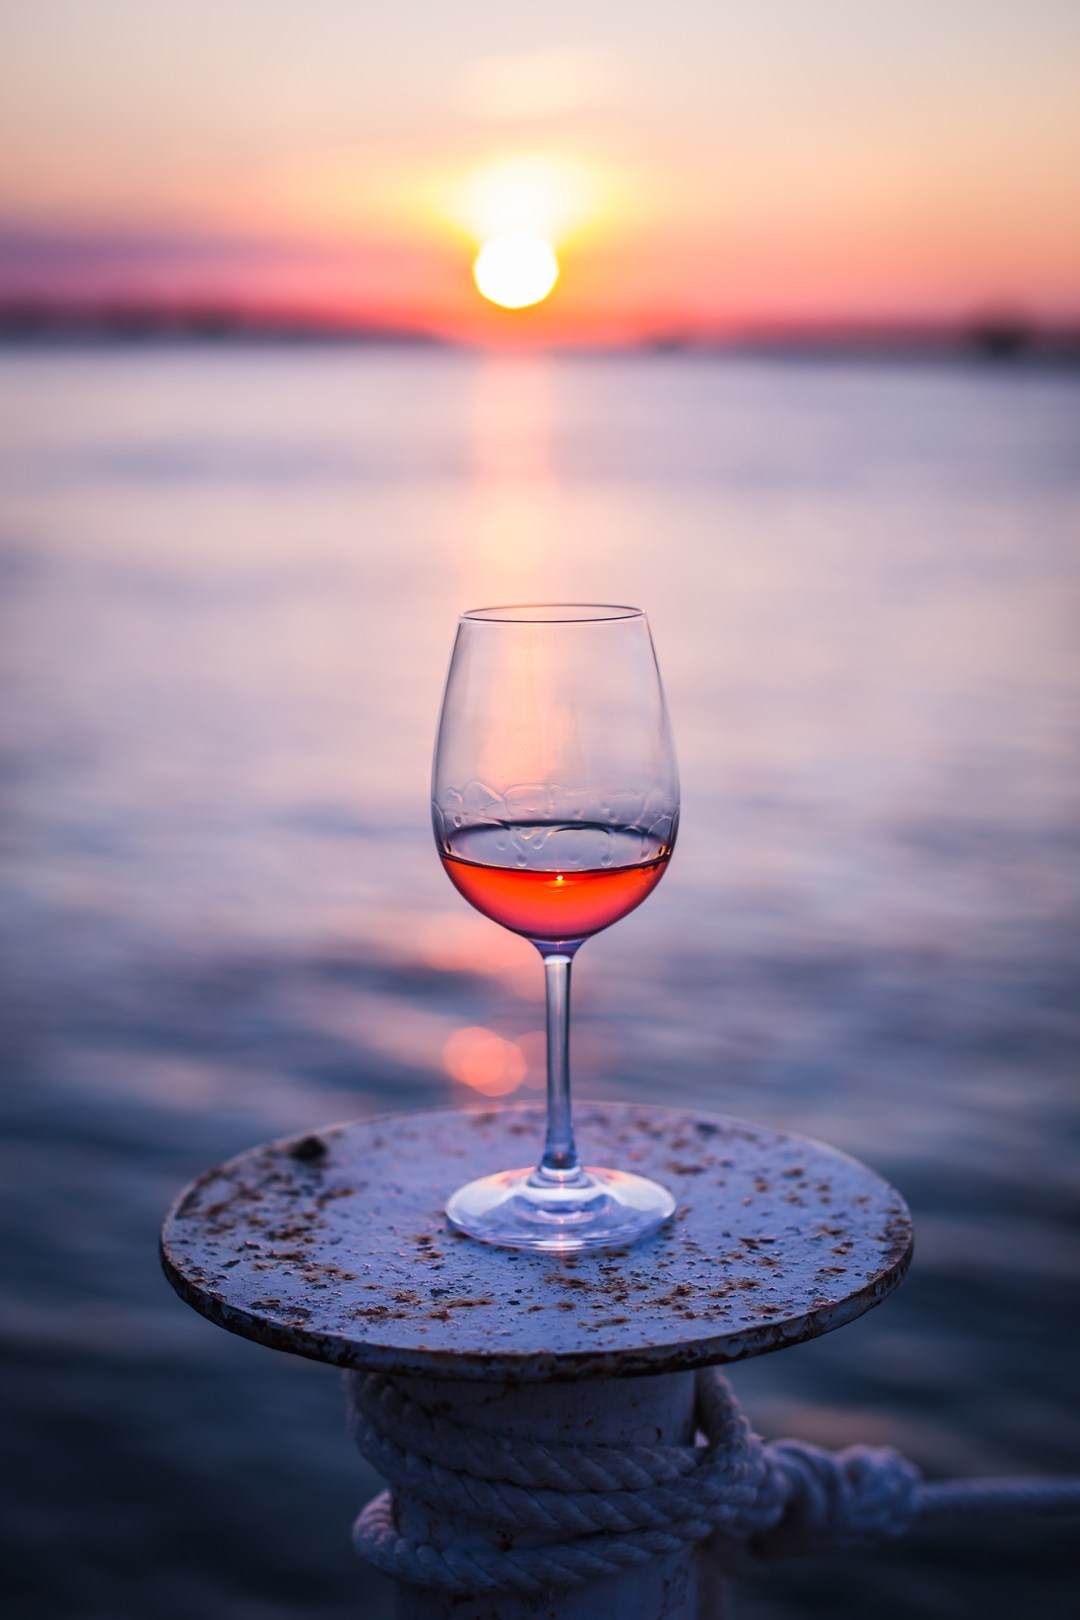 sunset in a glass of wine